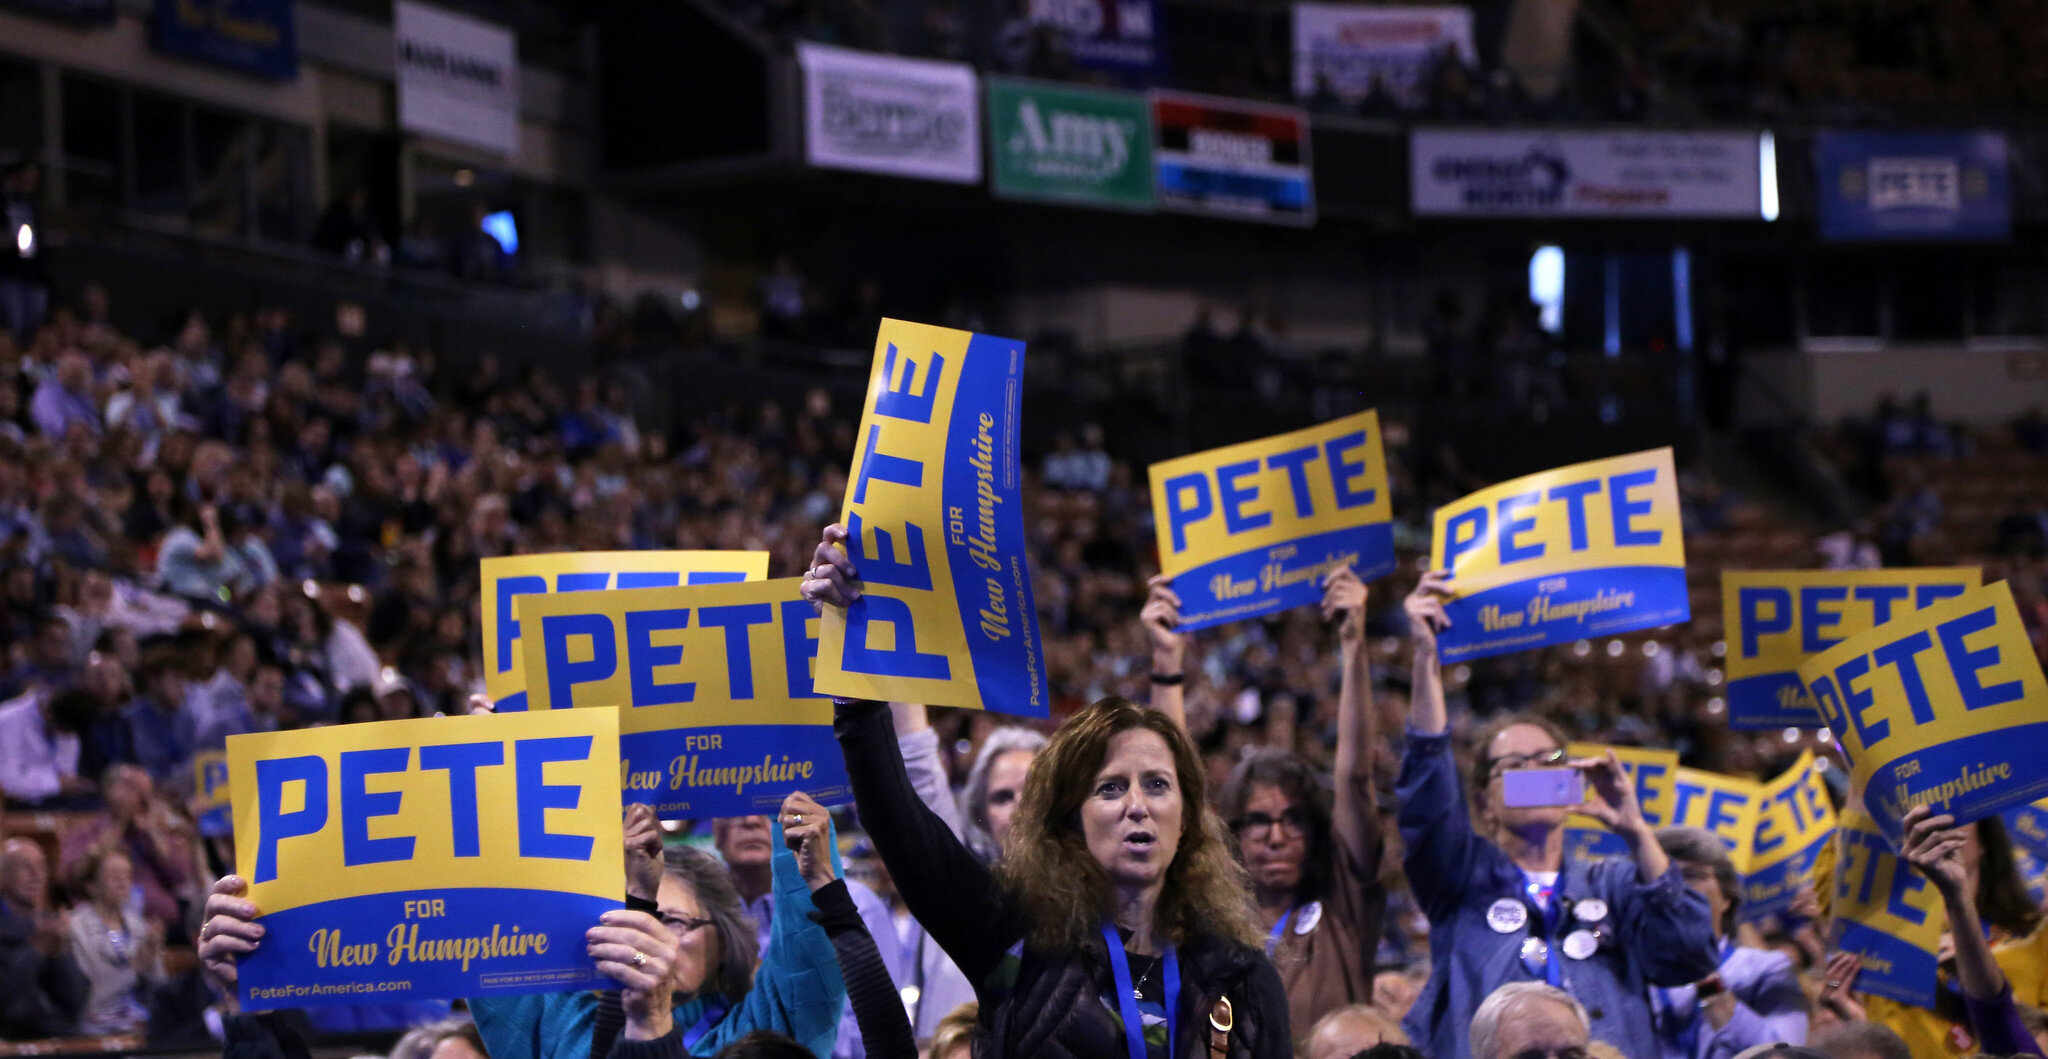 Supporters hold signs for Pete Buttigieg.